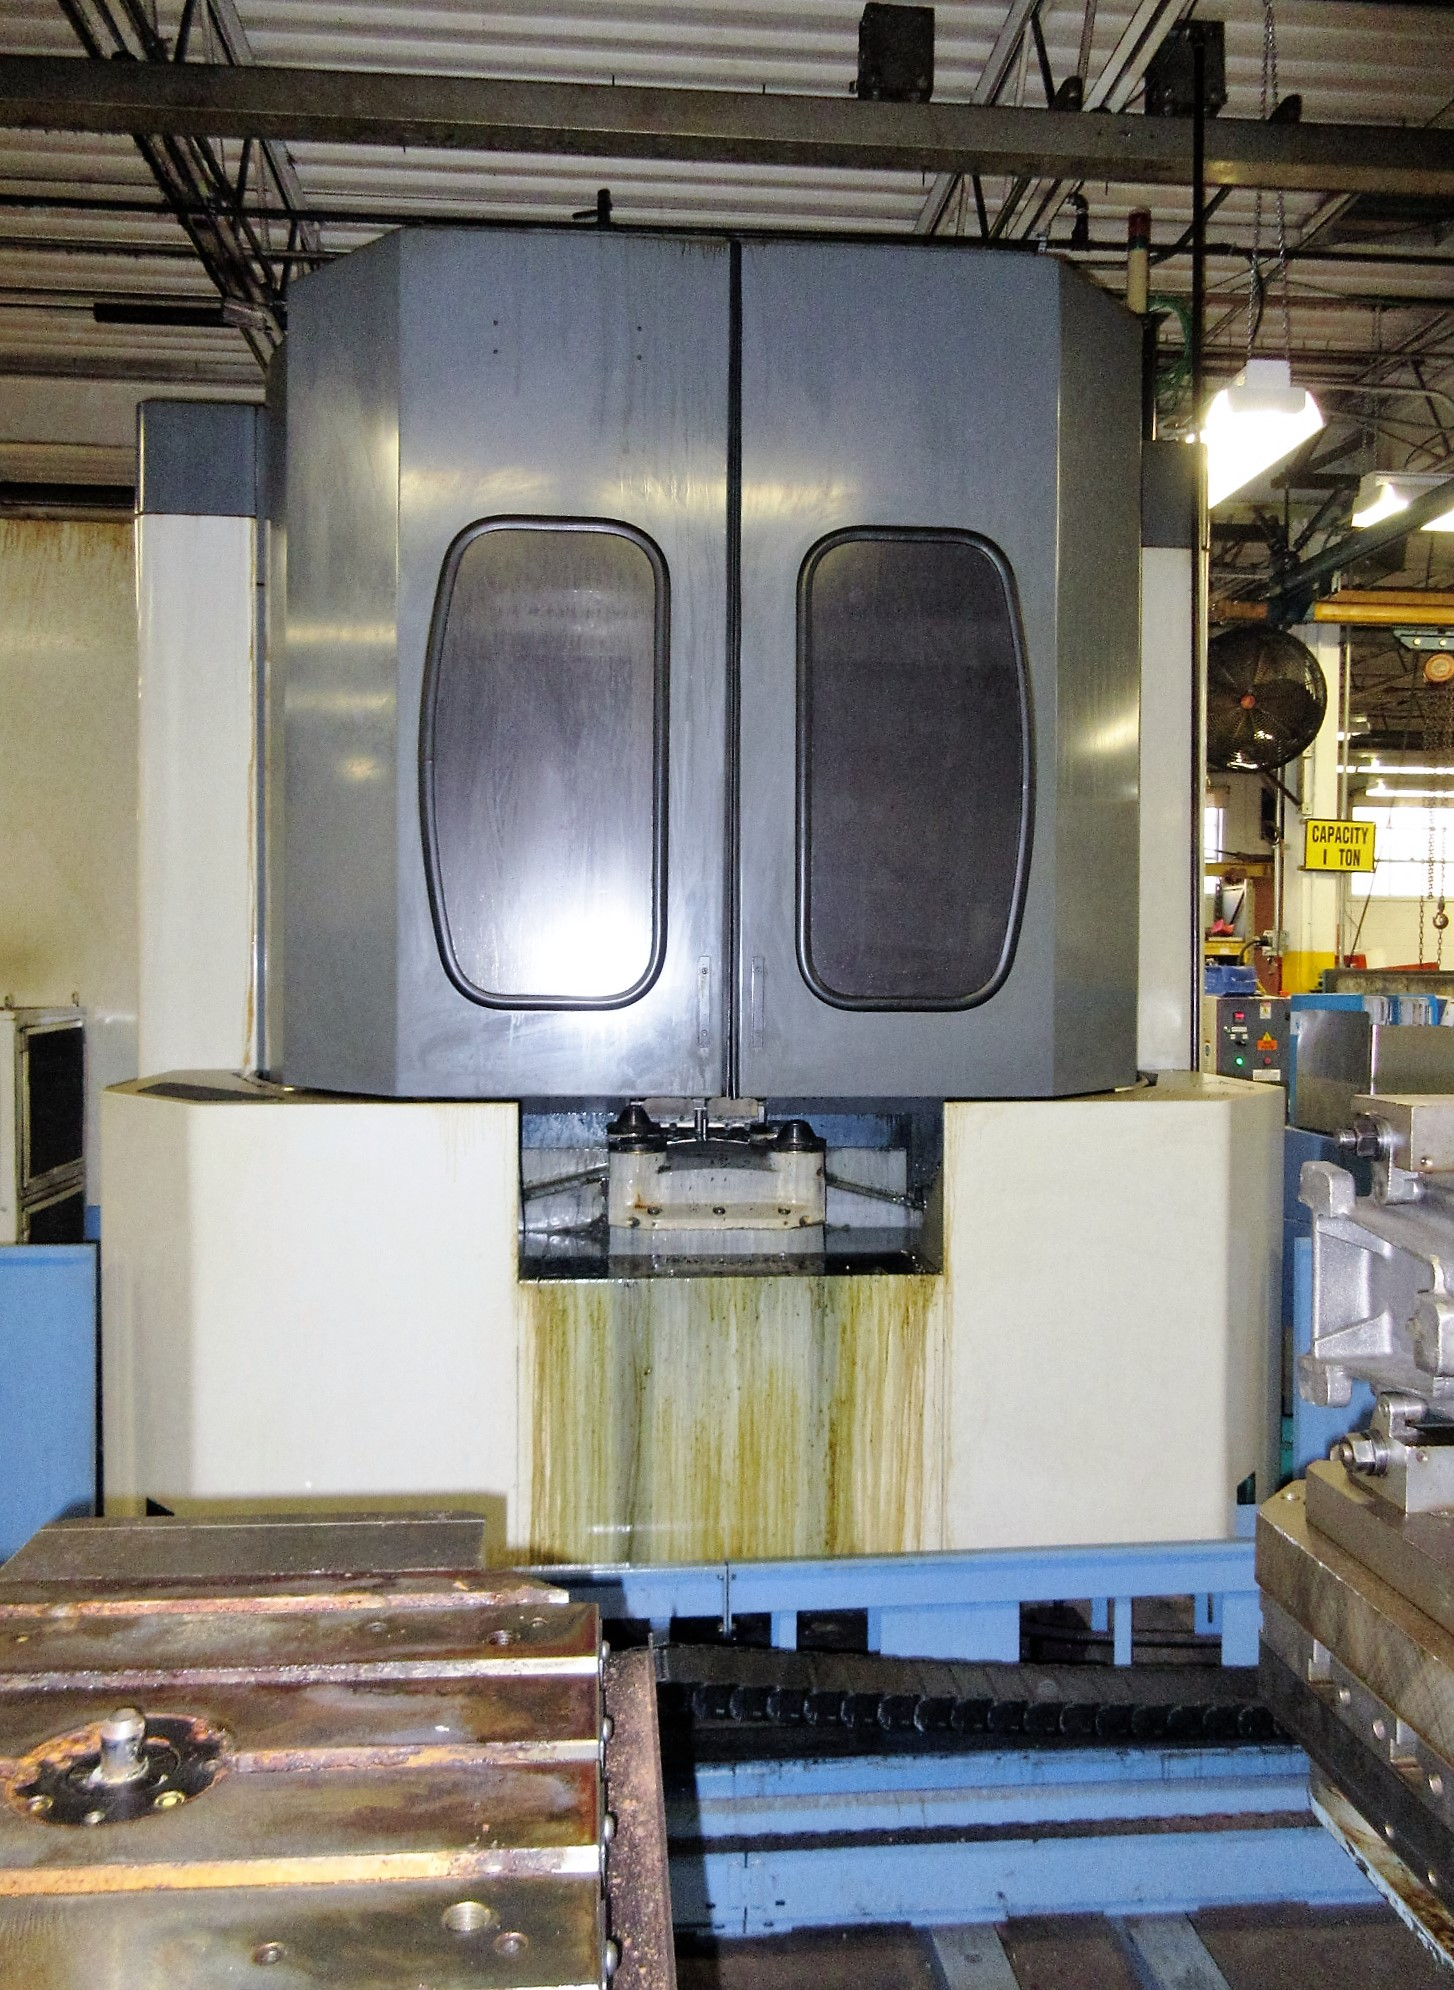 Mazak FH-6000 CNC Horizontal Machining Center With Palletech System - Image 9 of 21